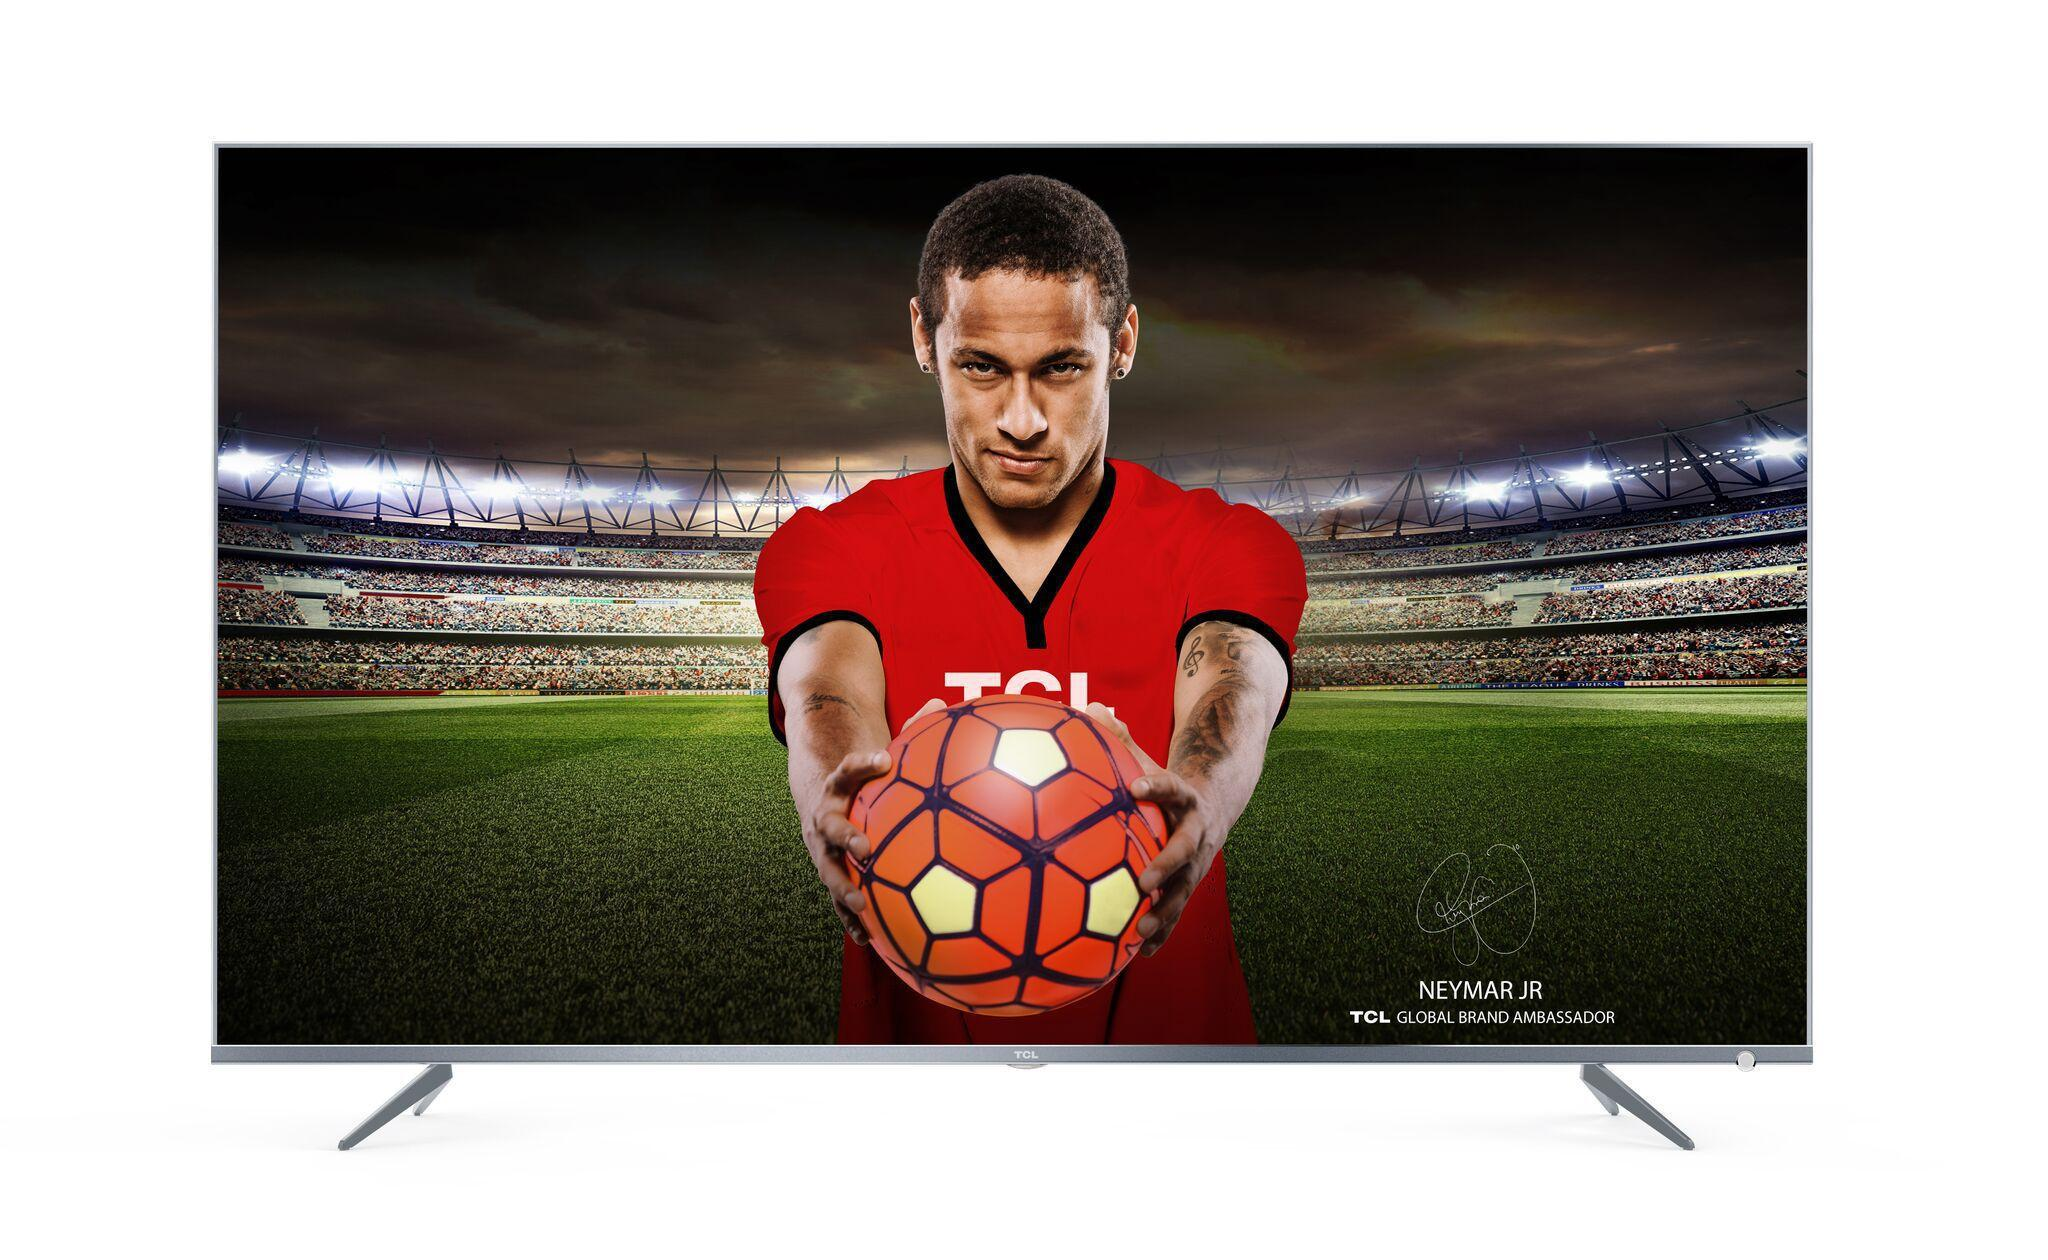 Televizorius TCL 50 DP 660 - 126 cm (50 col.) Fernseher (4K Ultra HD, HDR 10, Android - Televizoriai